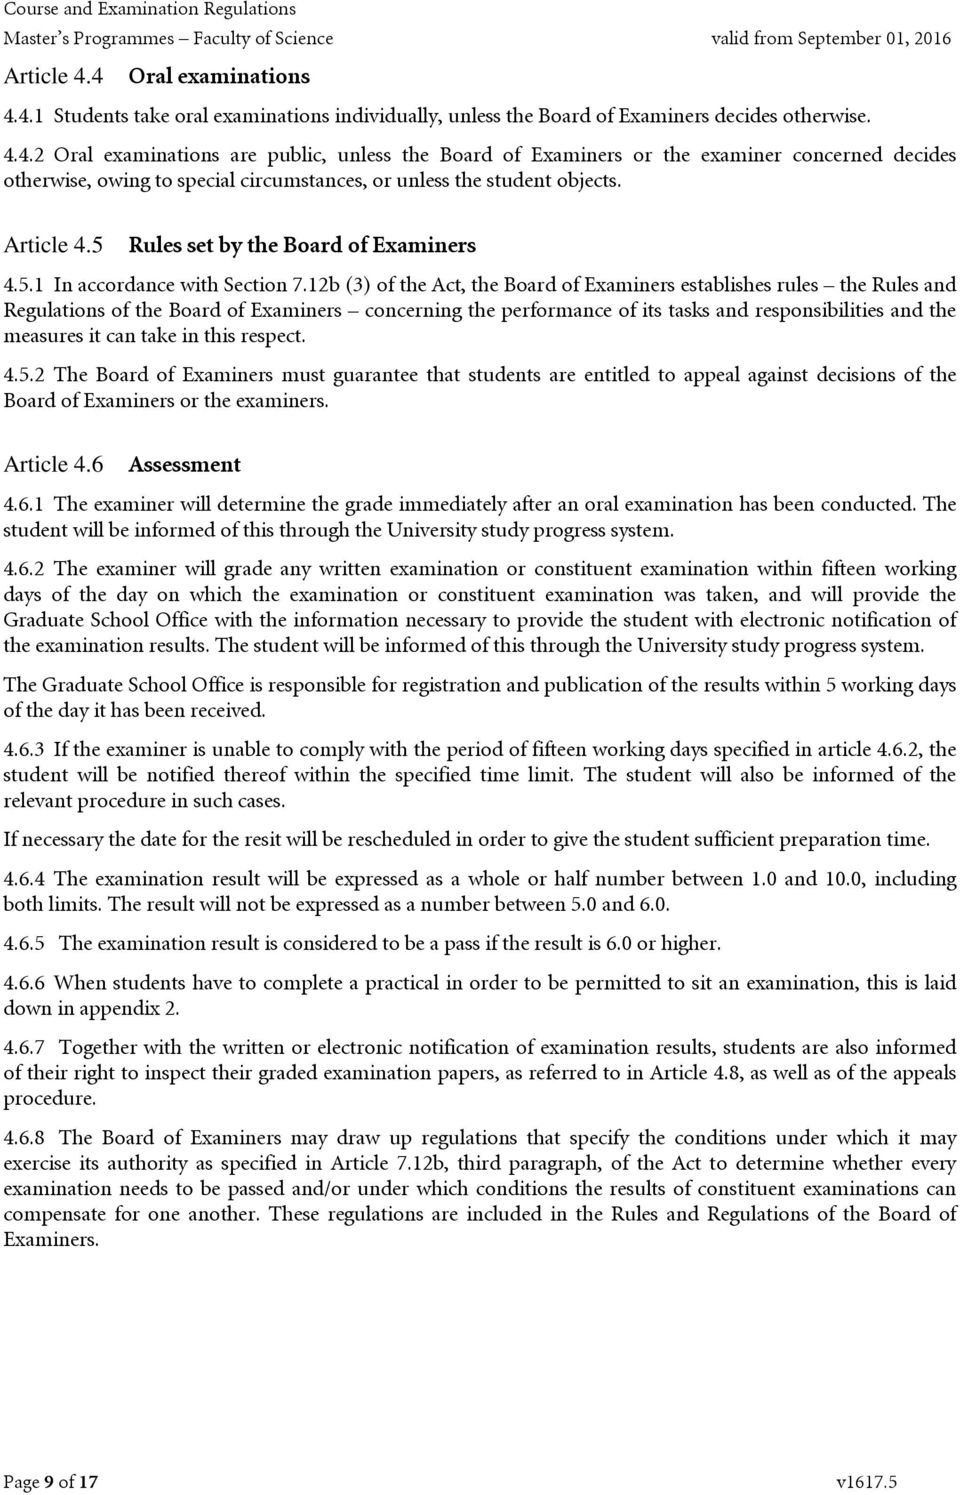 12b (3) of the Act, the Board of Examiners establishes rules the Rules and Regulations of the Board of Examiners concerning the performance of its tasks and responsibilities and the measures it can